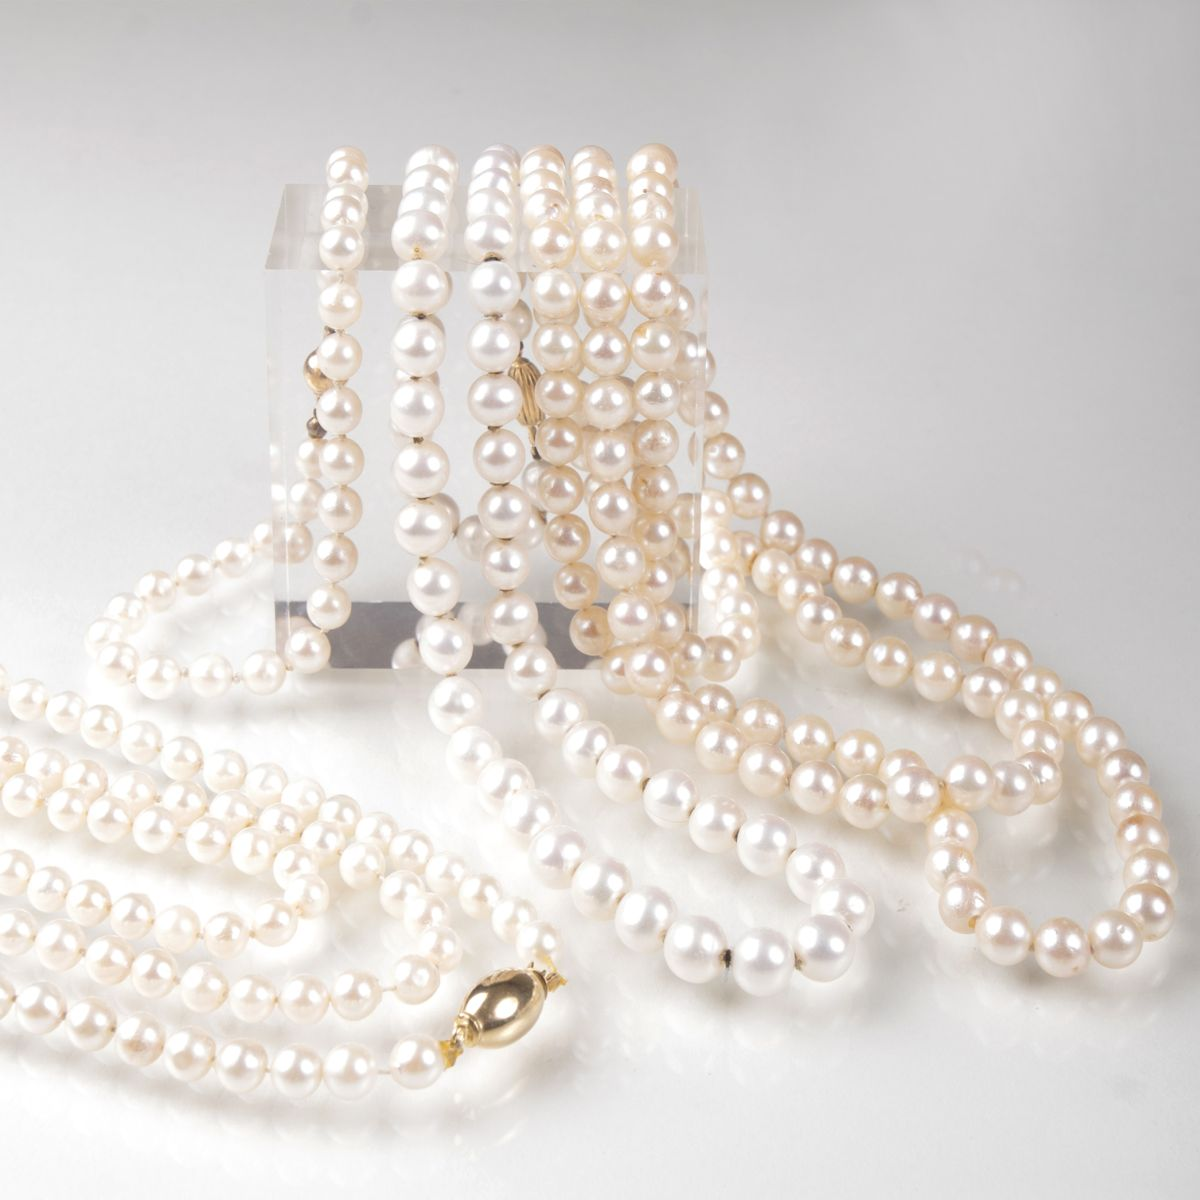 Three pearl necklaces and one pearl bracelet